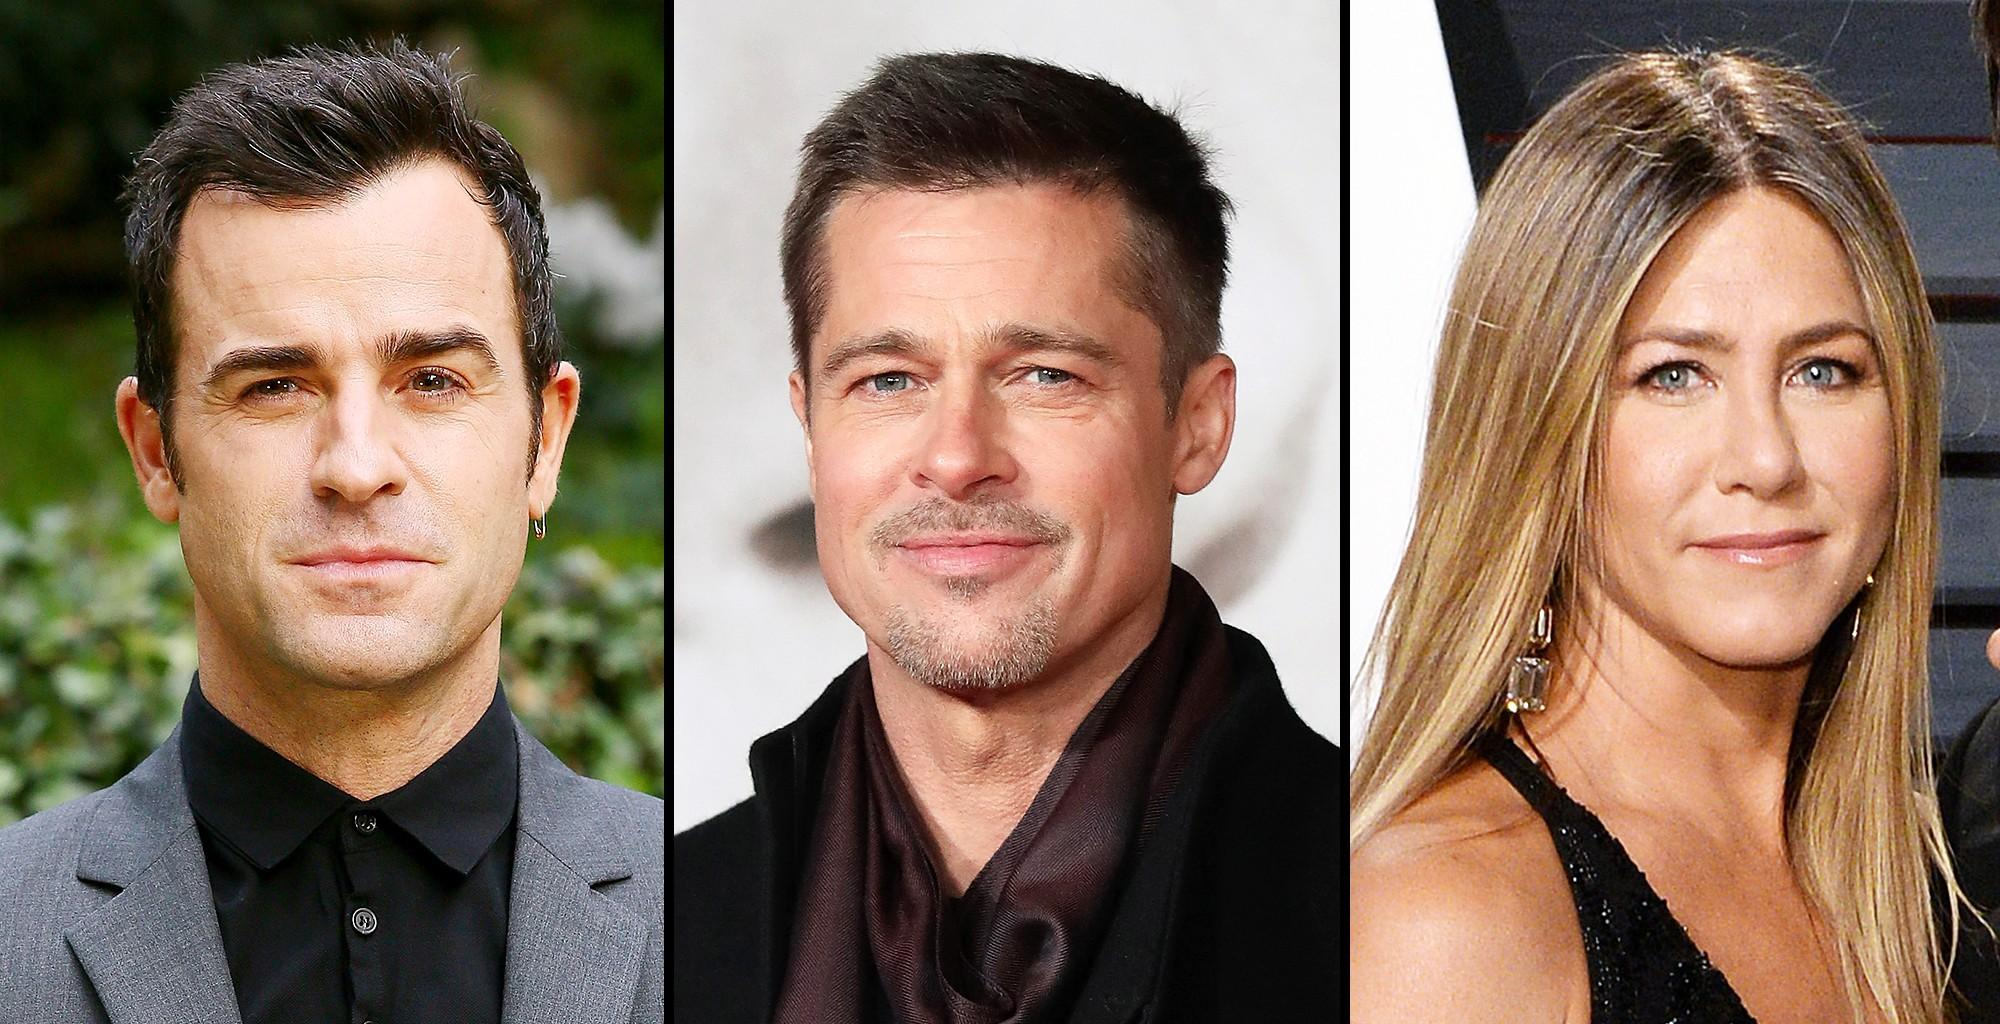 Jennifer Aniston Allegedly Reunited With Her Exes, Justin Theroux And Brad Pitt, For Different Reasons -- Pictures Seem To Confirm The Reports